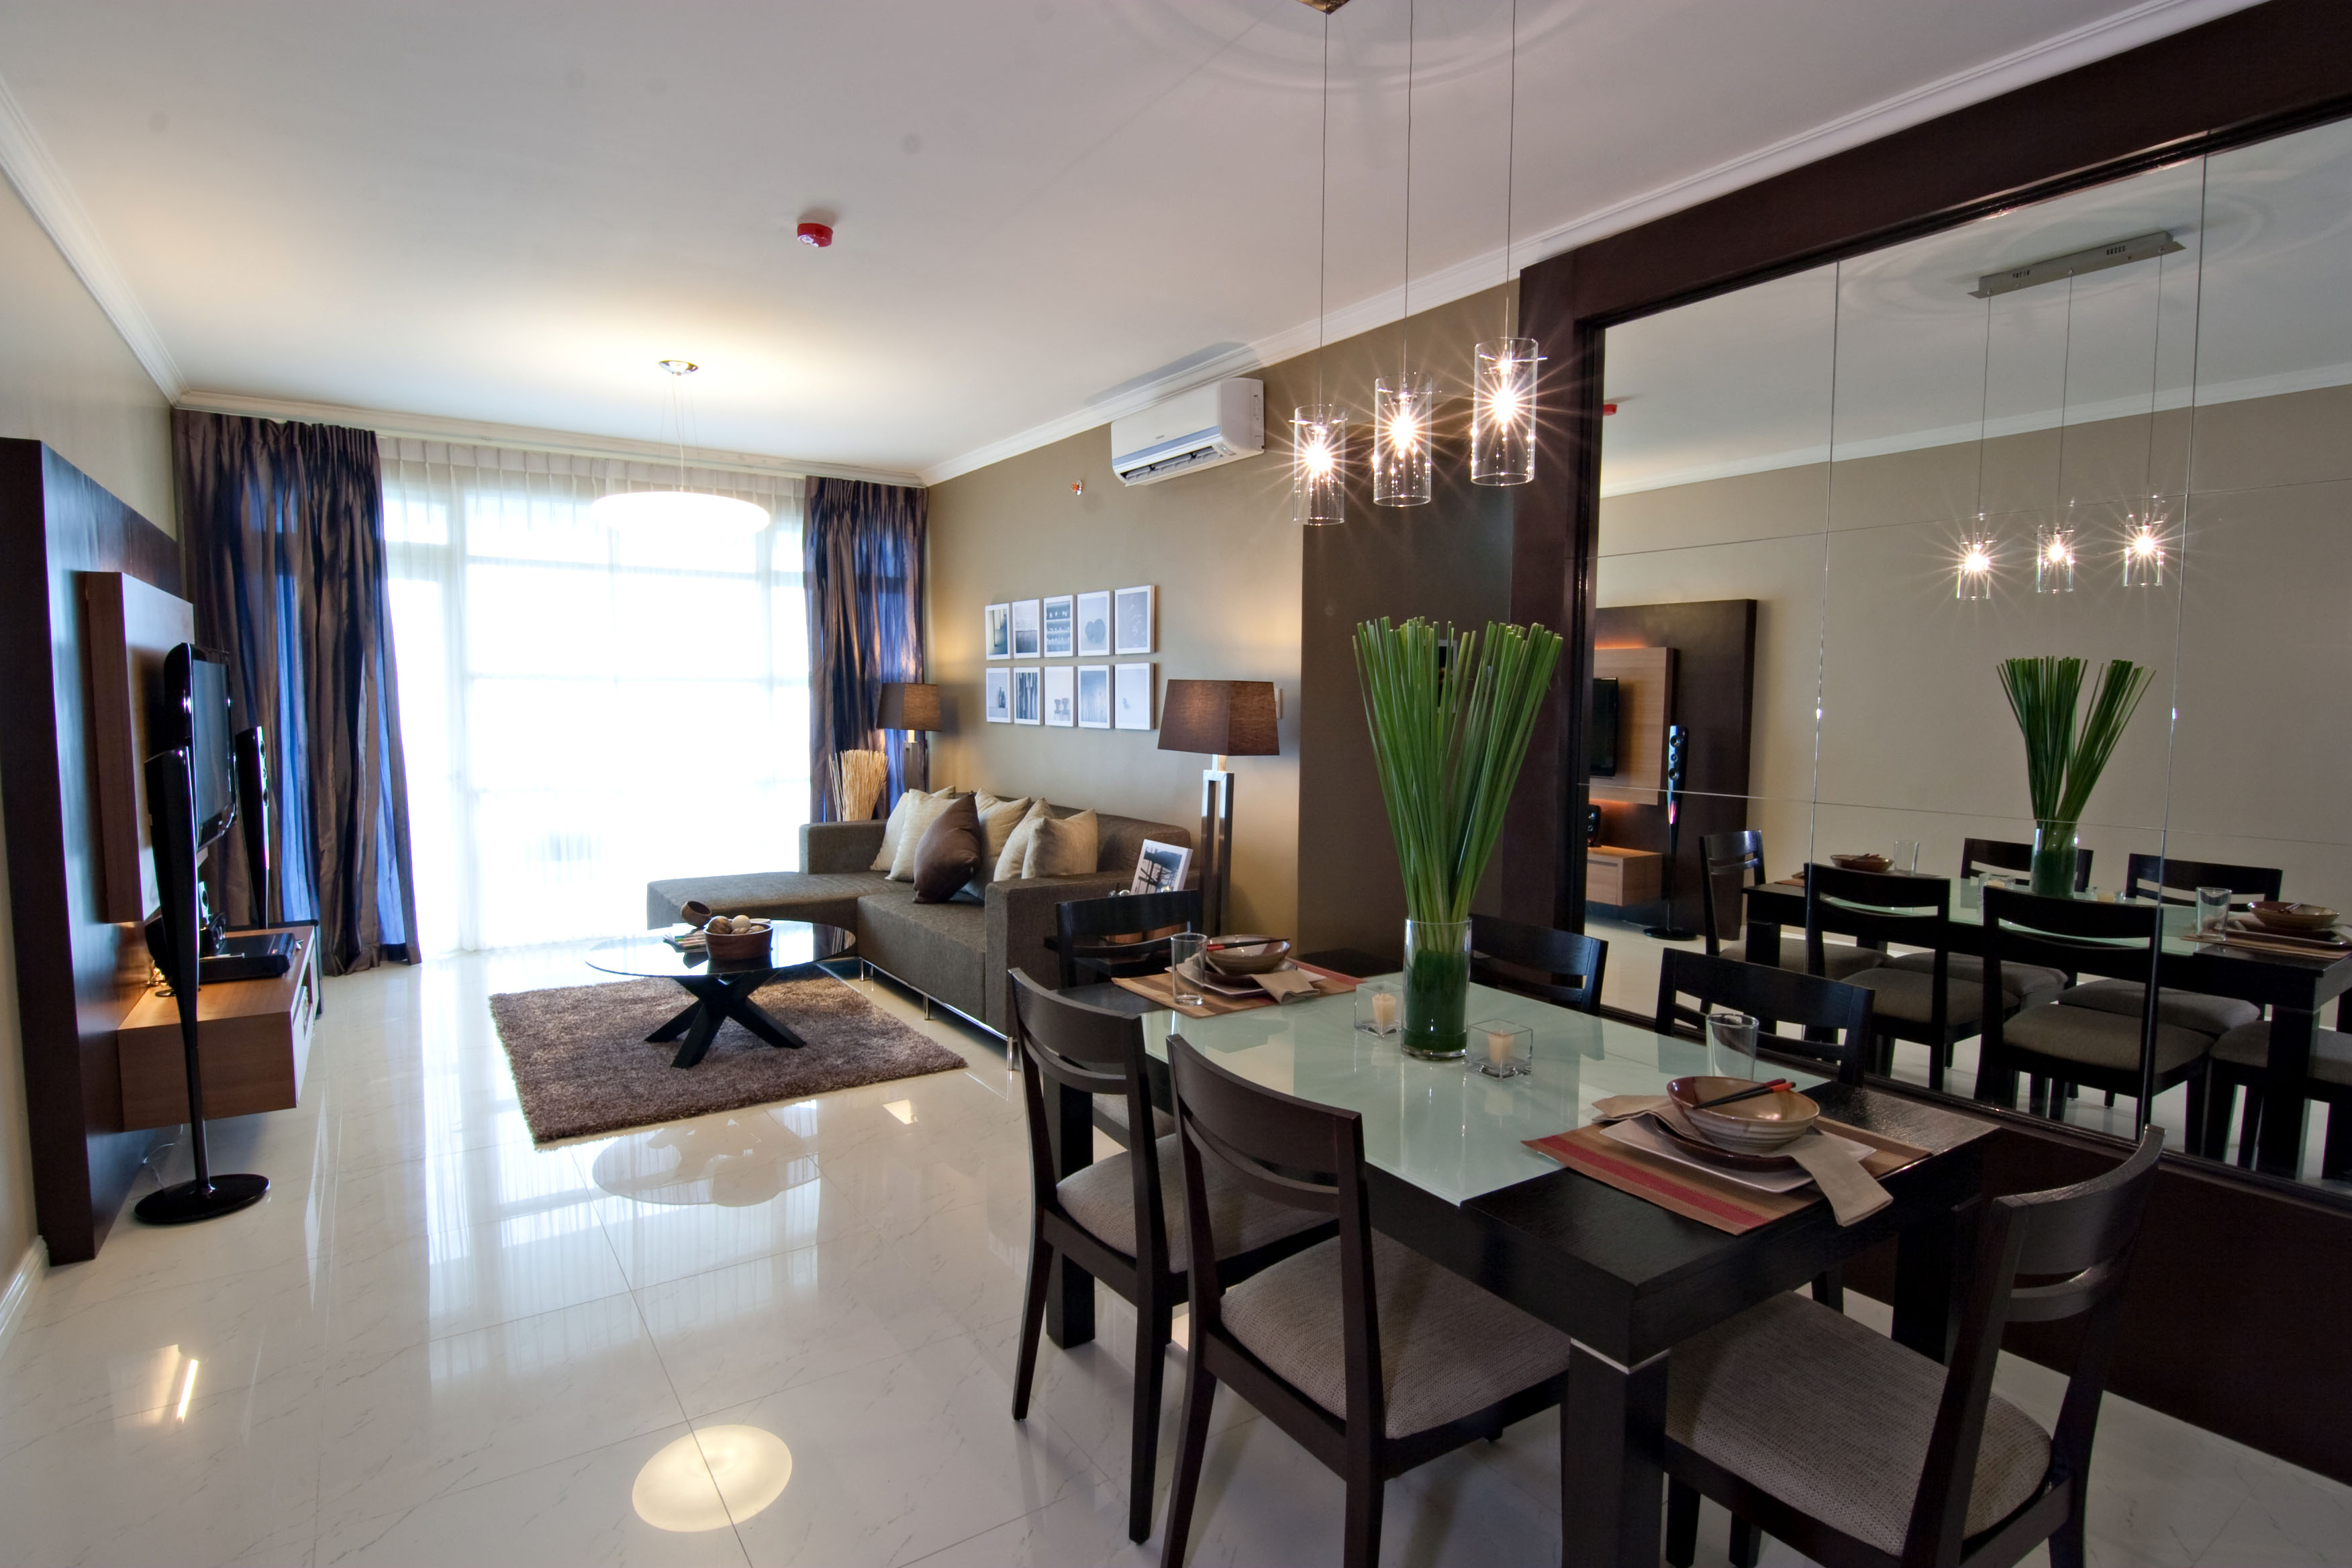 Home decorating pictures 1 bedroom condo design ideas for Condo interior design philippines